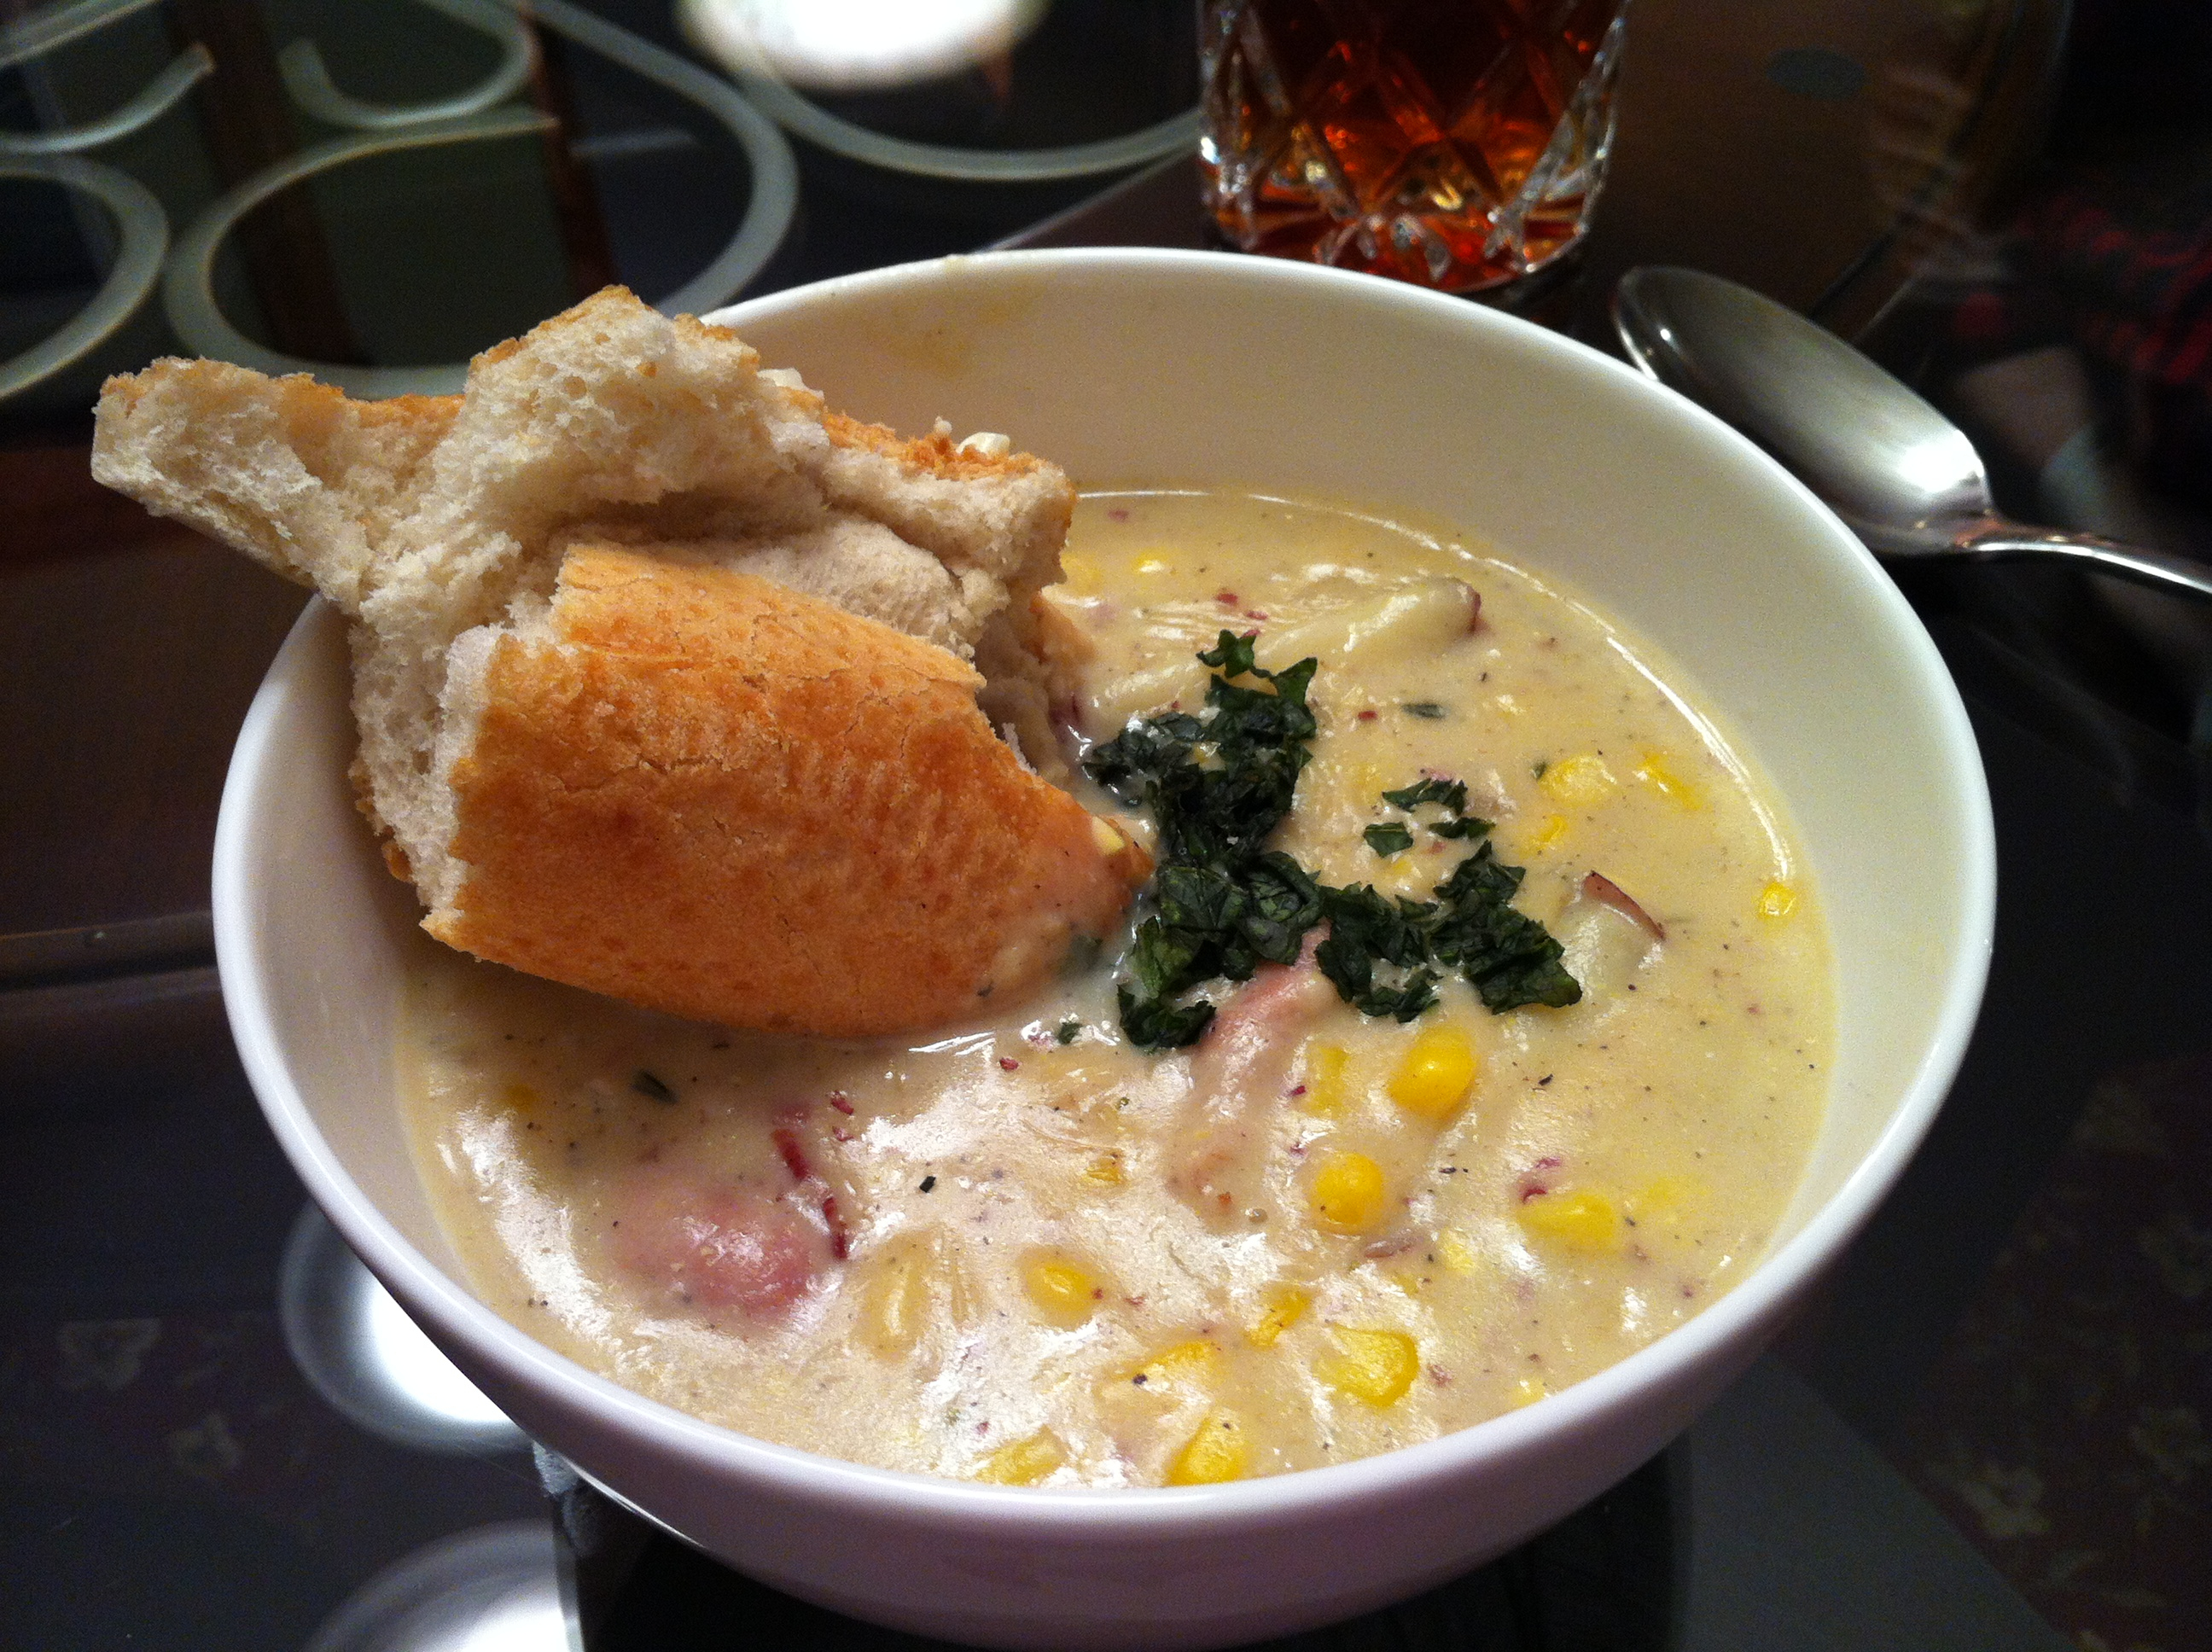 Finished Corn Chowder with Sweet Tea and French Baguette